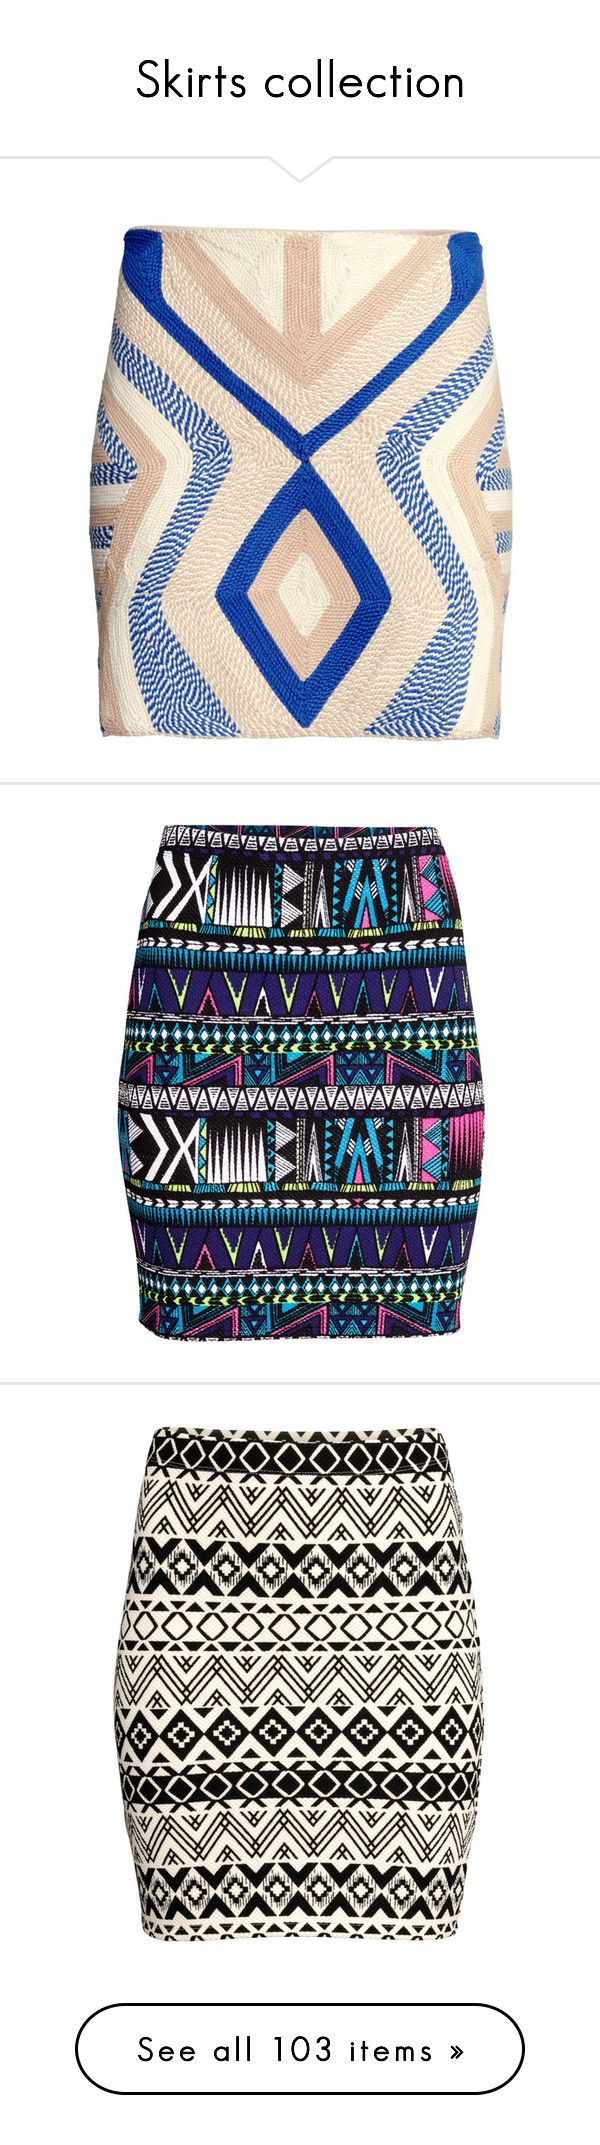 """""""Skirts collection"""" by vladoslav ❤ liked on Polyvore featuring skirts, h&m, h&m skirts, embroidered skirt, elastic waist skirt, jersey knit skirt, print skirt, pattern skirt, jersey skirt and mini skirts"""